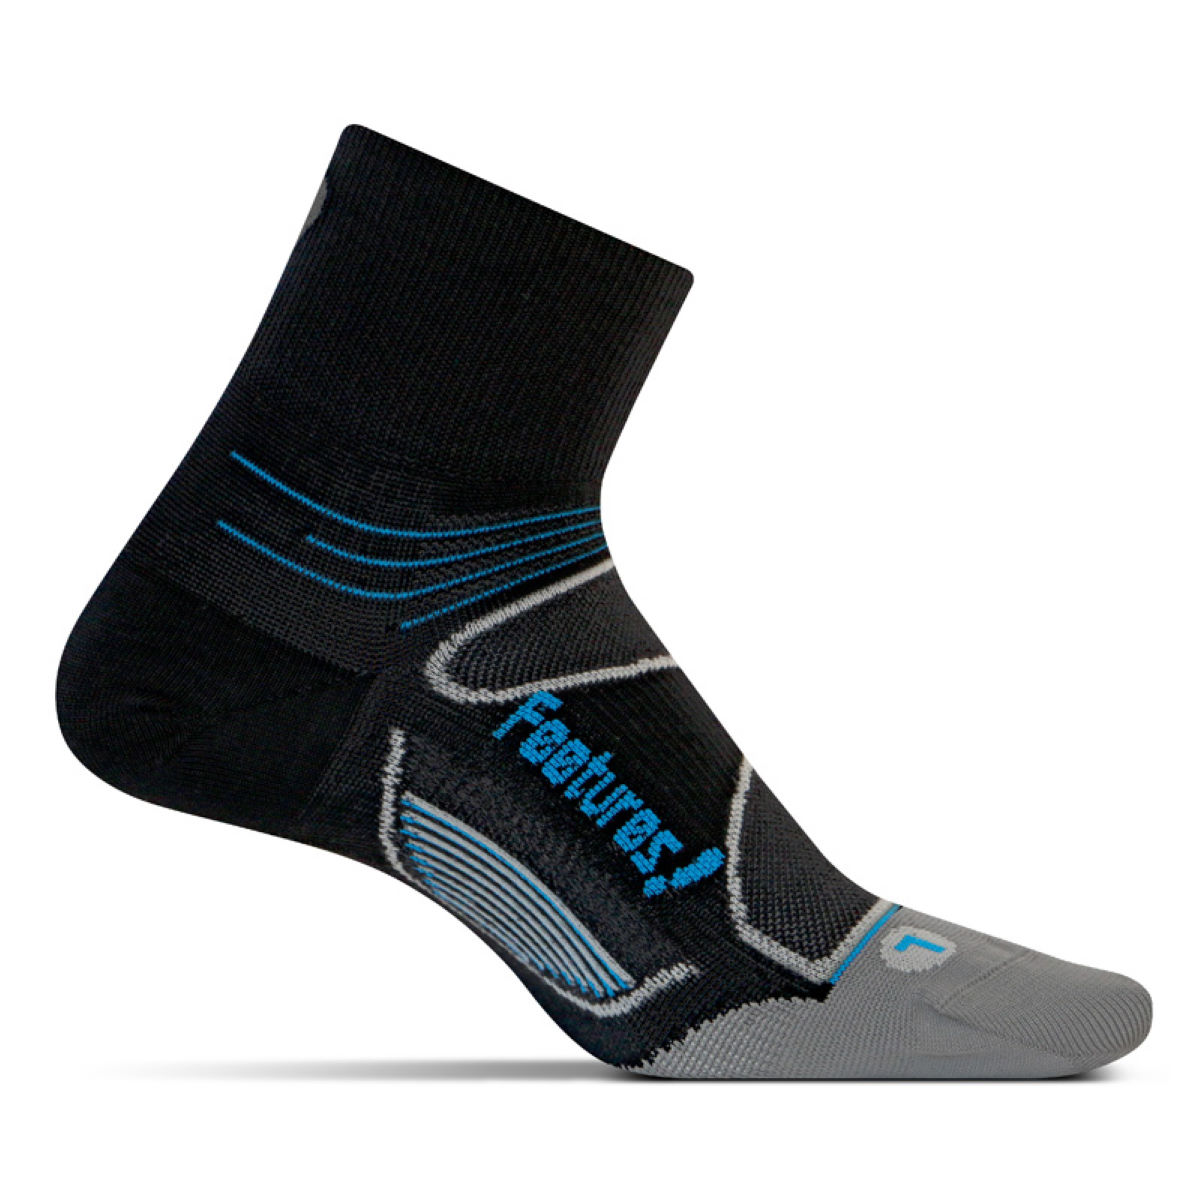 Calcetines Feetures! Elite Ultra Light Quarter - Calcetines para correr